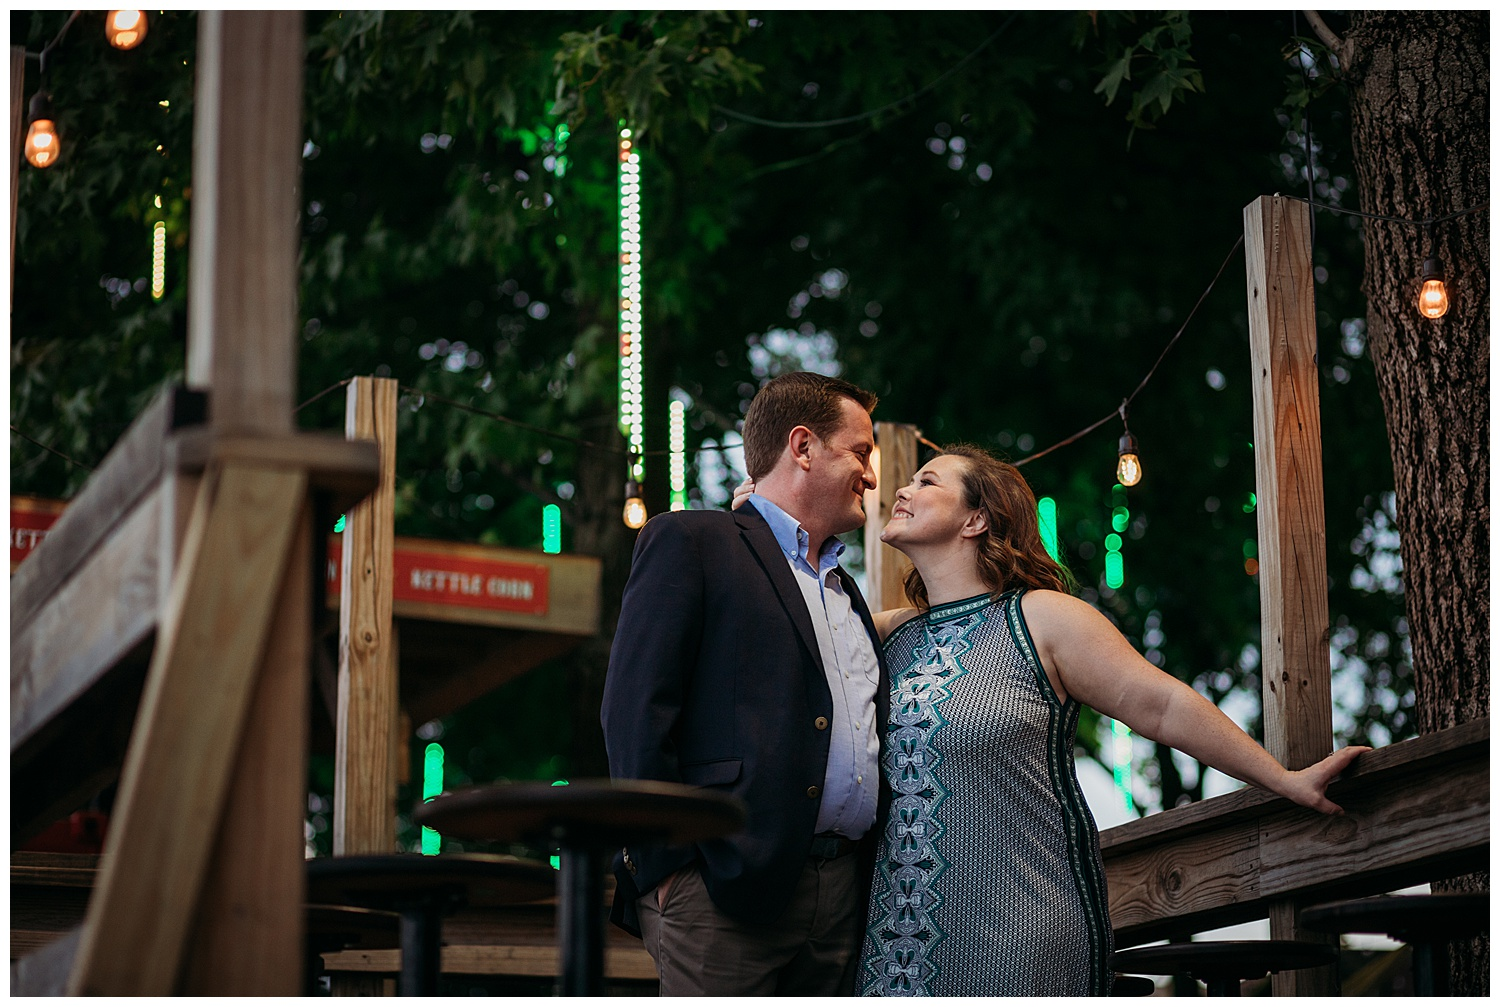 Spruce Street Harbor Engagement Photography Shoot